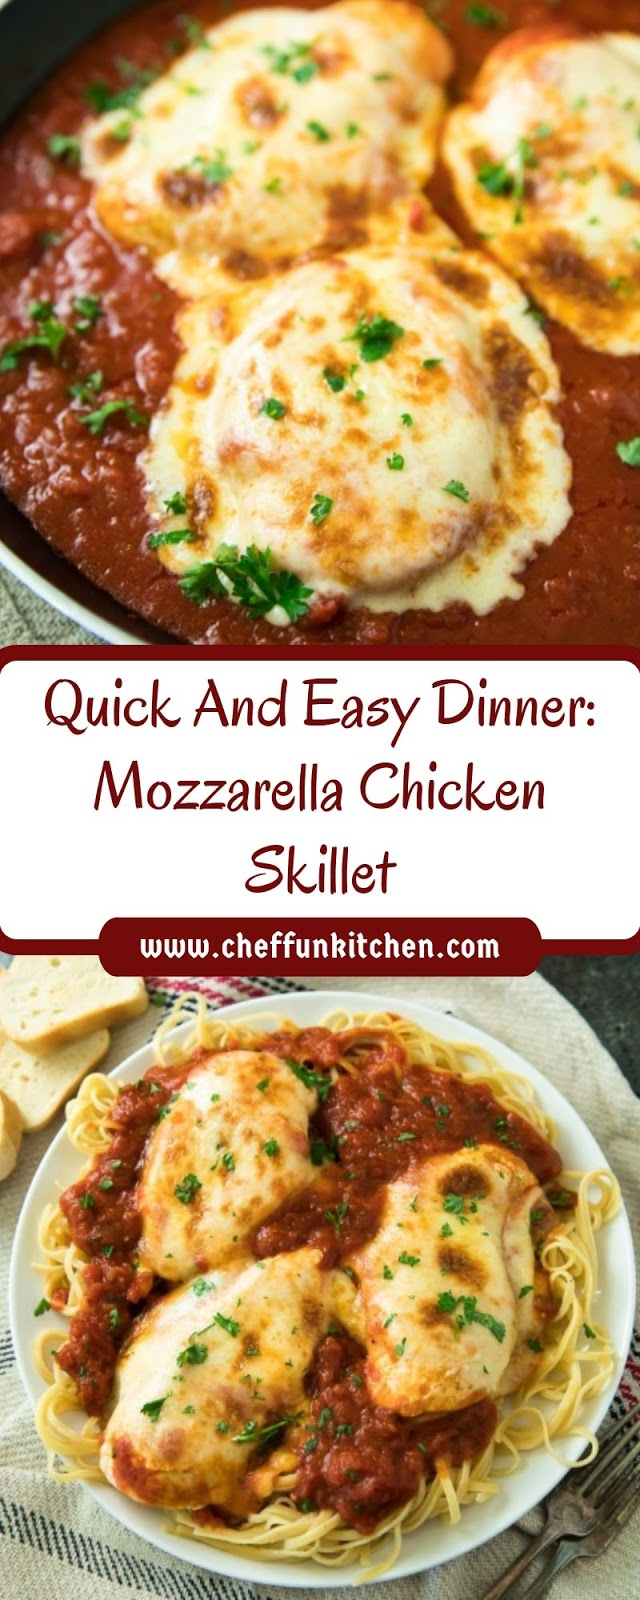 Quick And Easy Dinner: Mozzarella Chicken Skillet